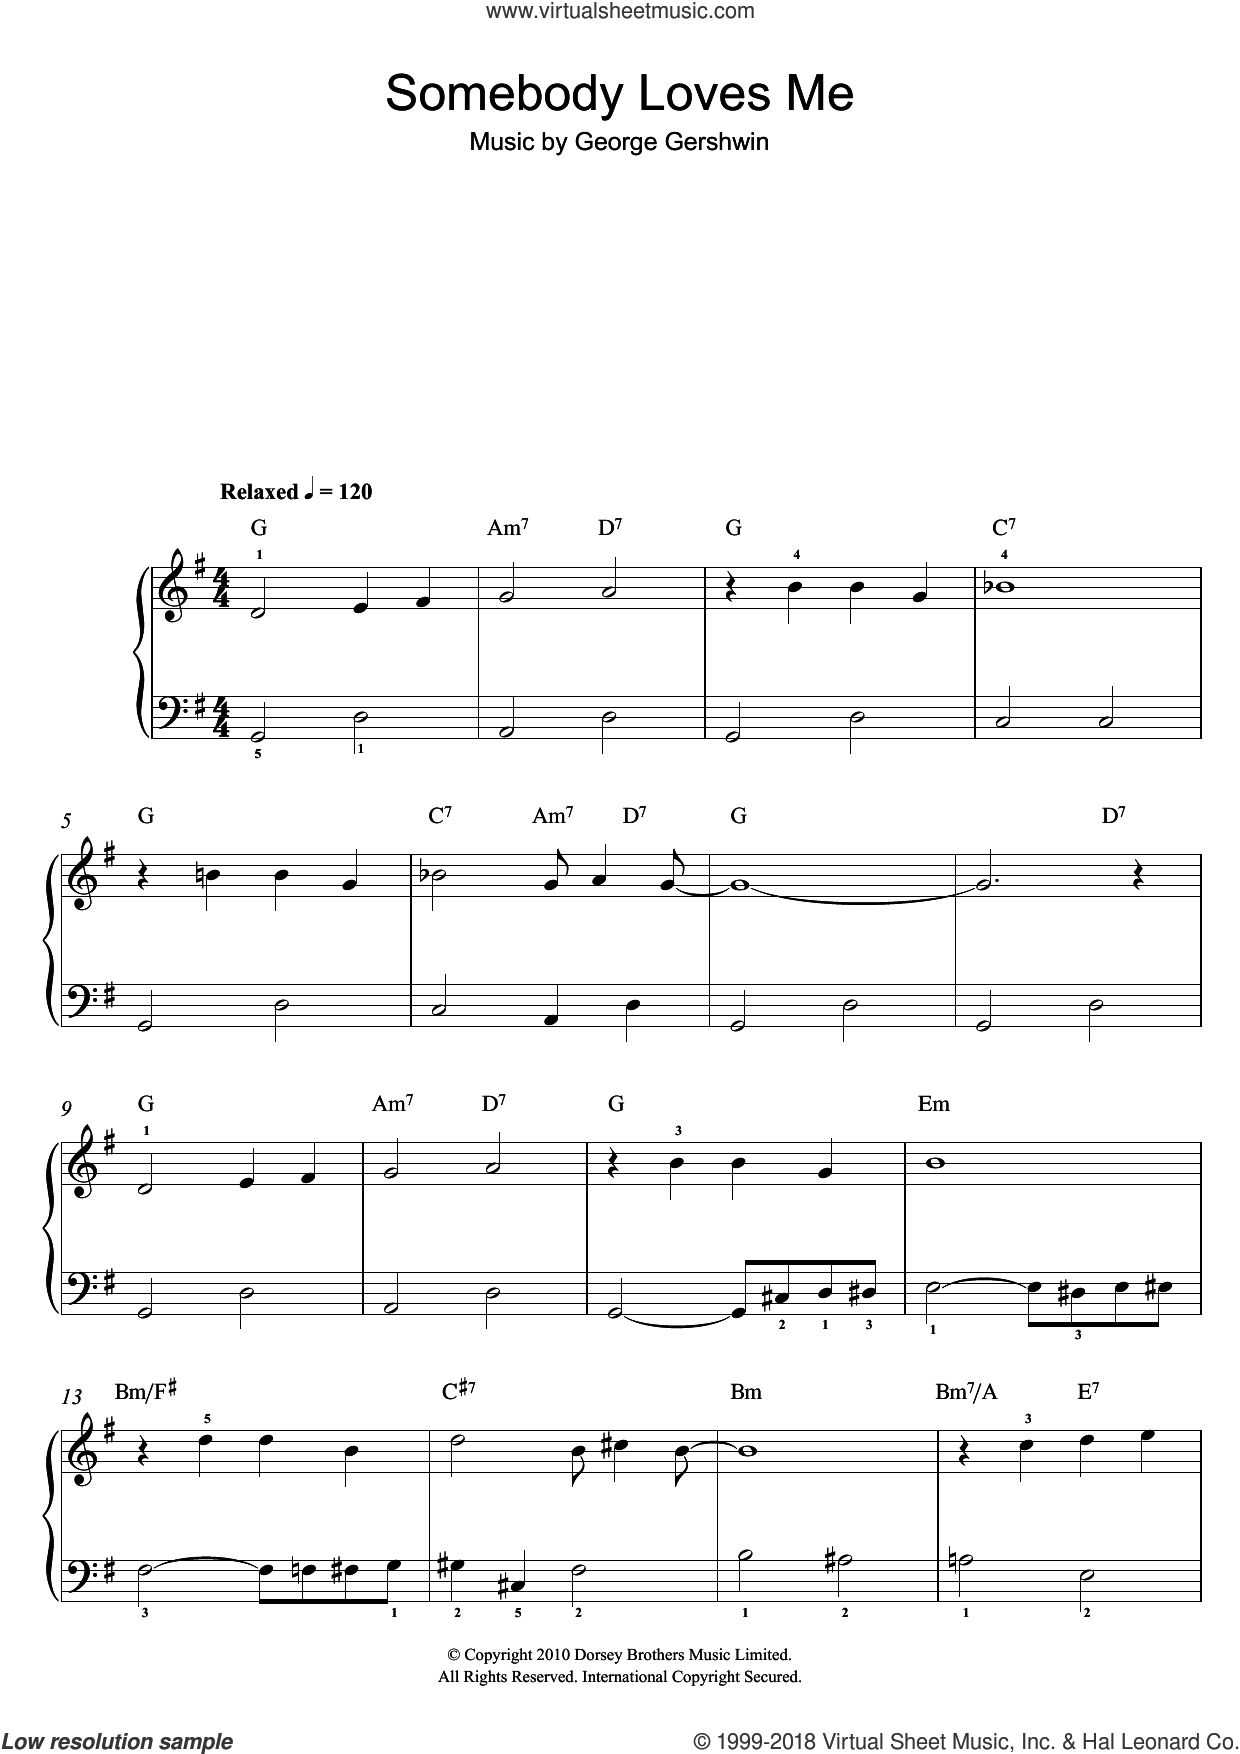 Somebody Loves Me sheet music for piano solo (chords) by George Gershwin